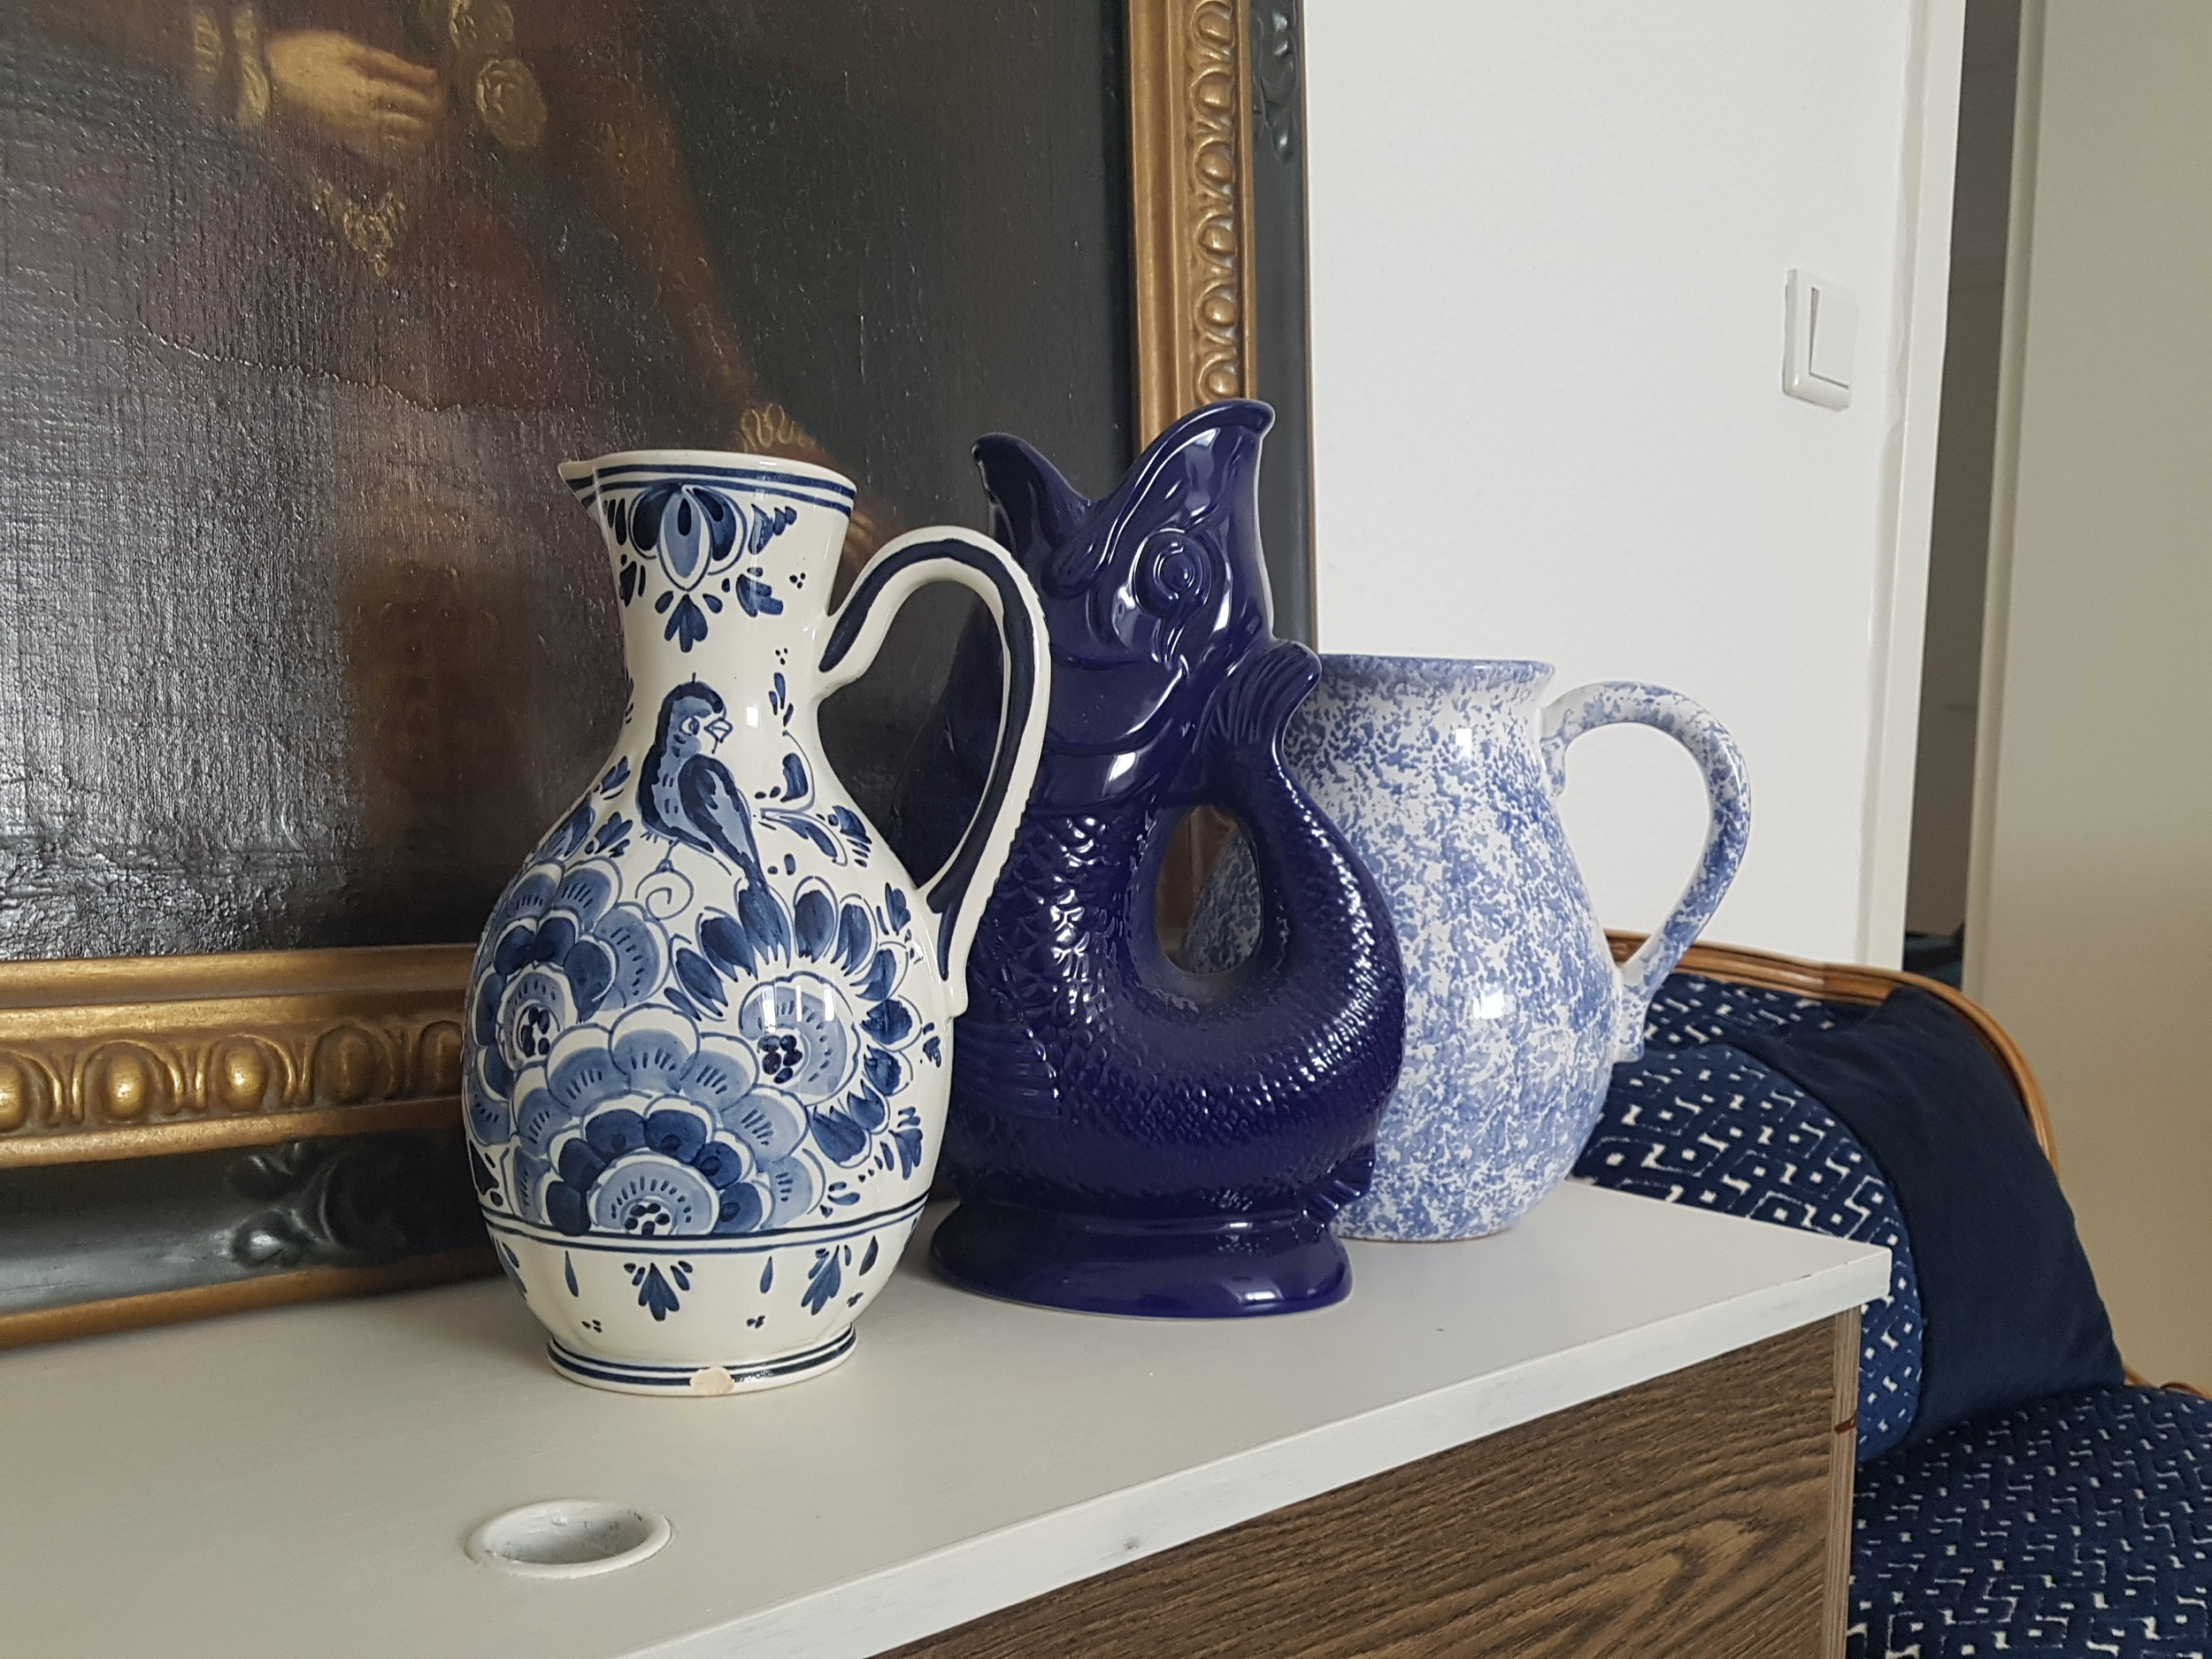 My Delftware at home with my other blue and white ornaments.